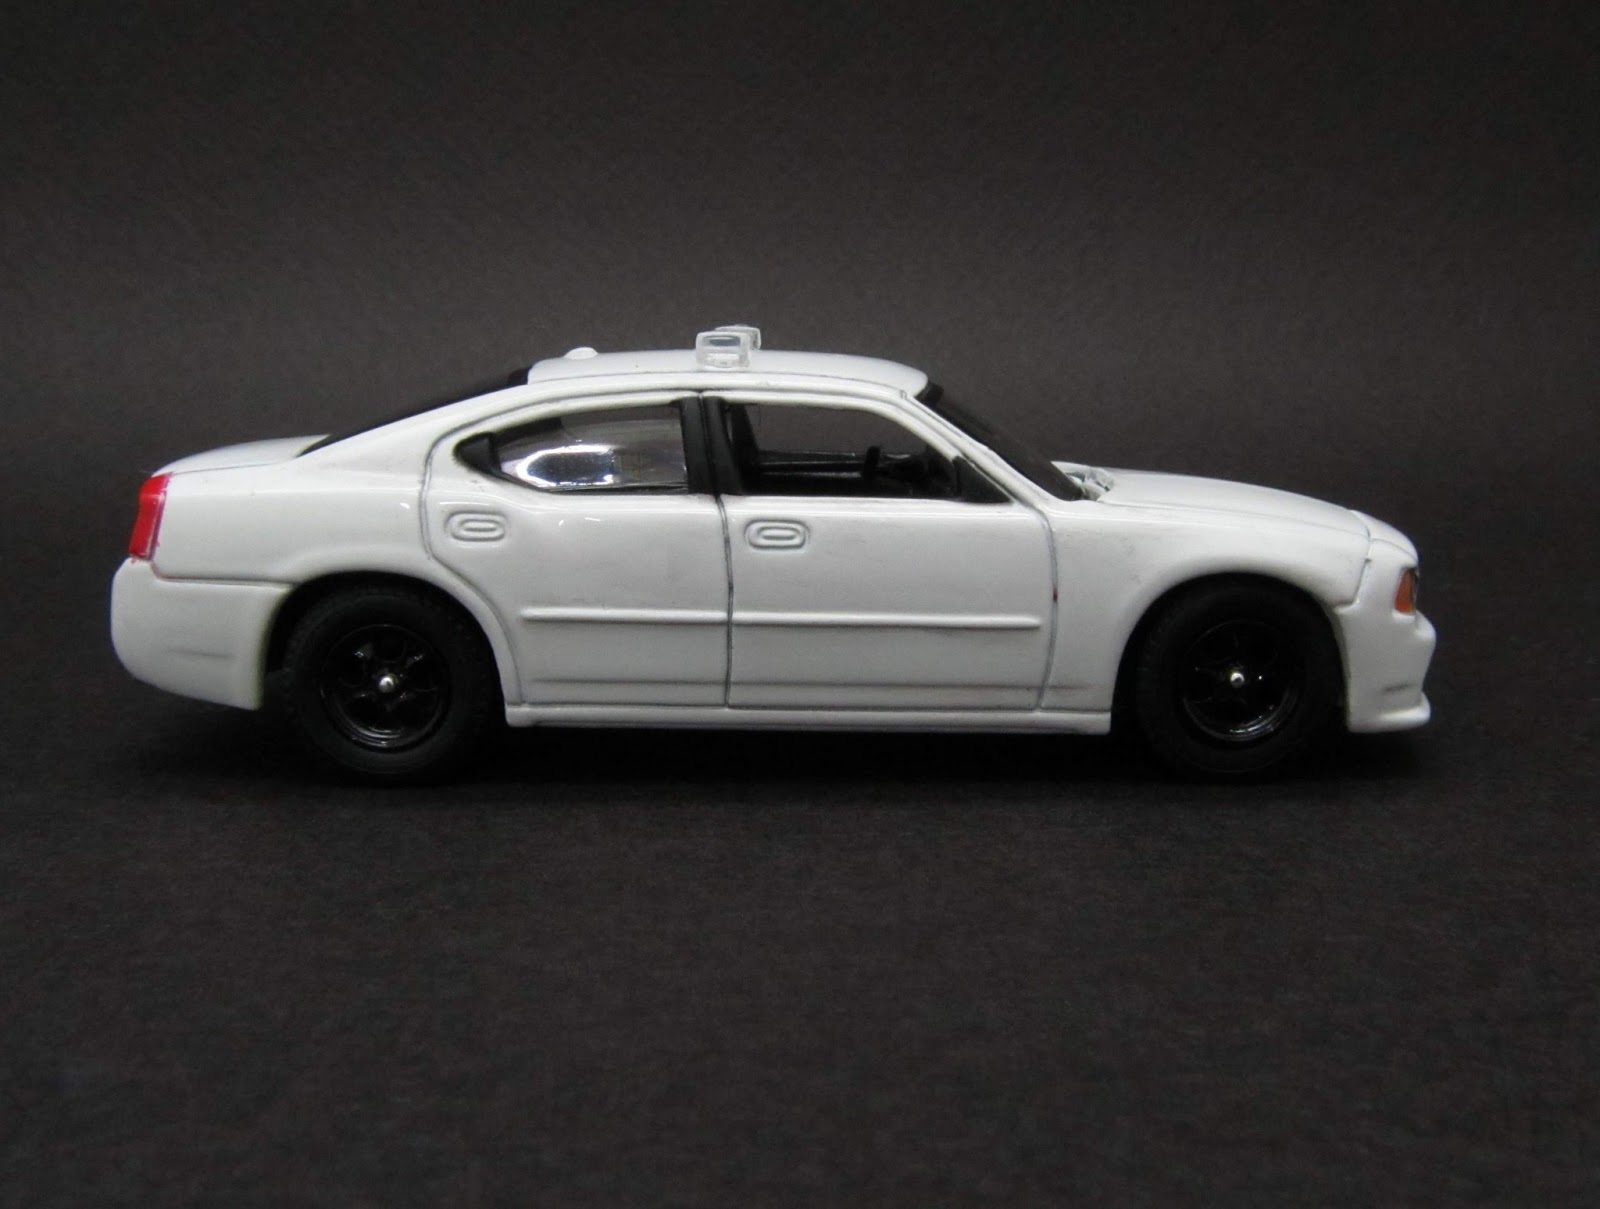 Diecast hobbist 2008 dodge charger unmarked police car for 2008 dodge charger motor